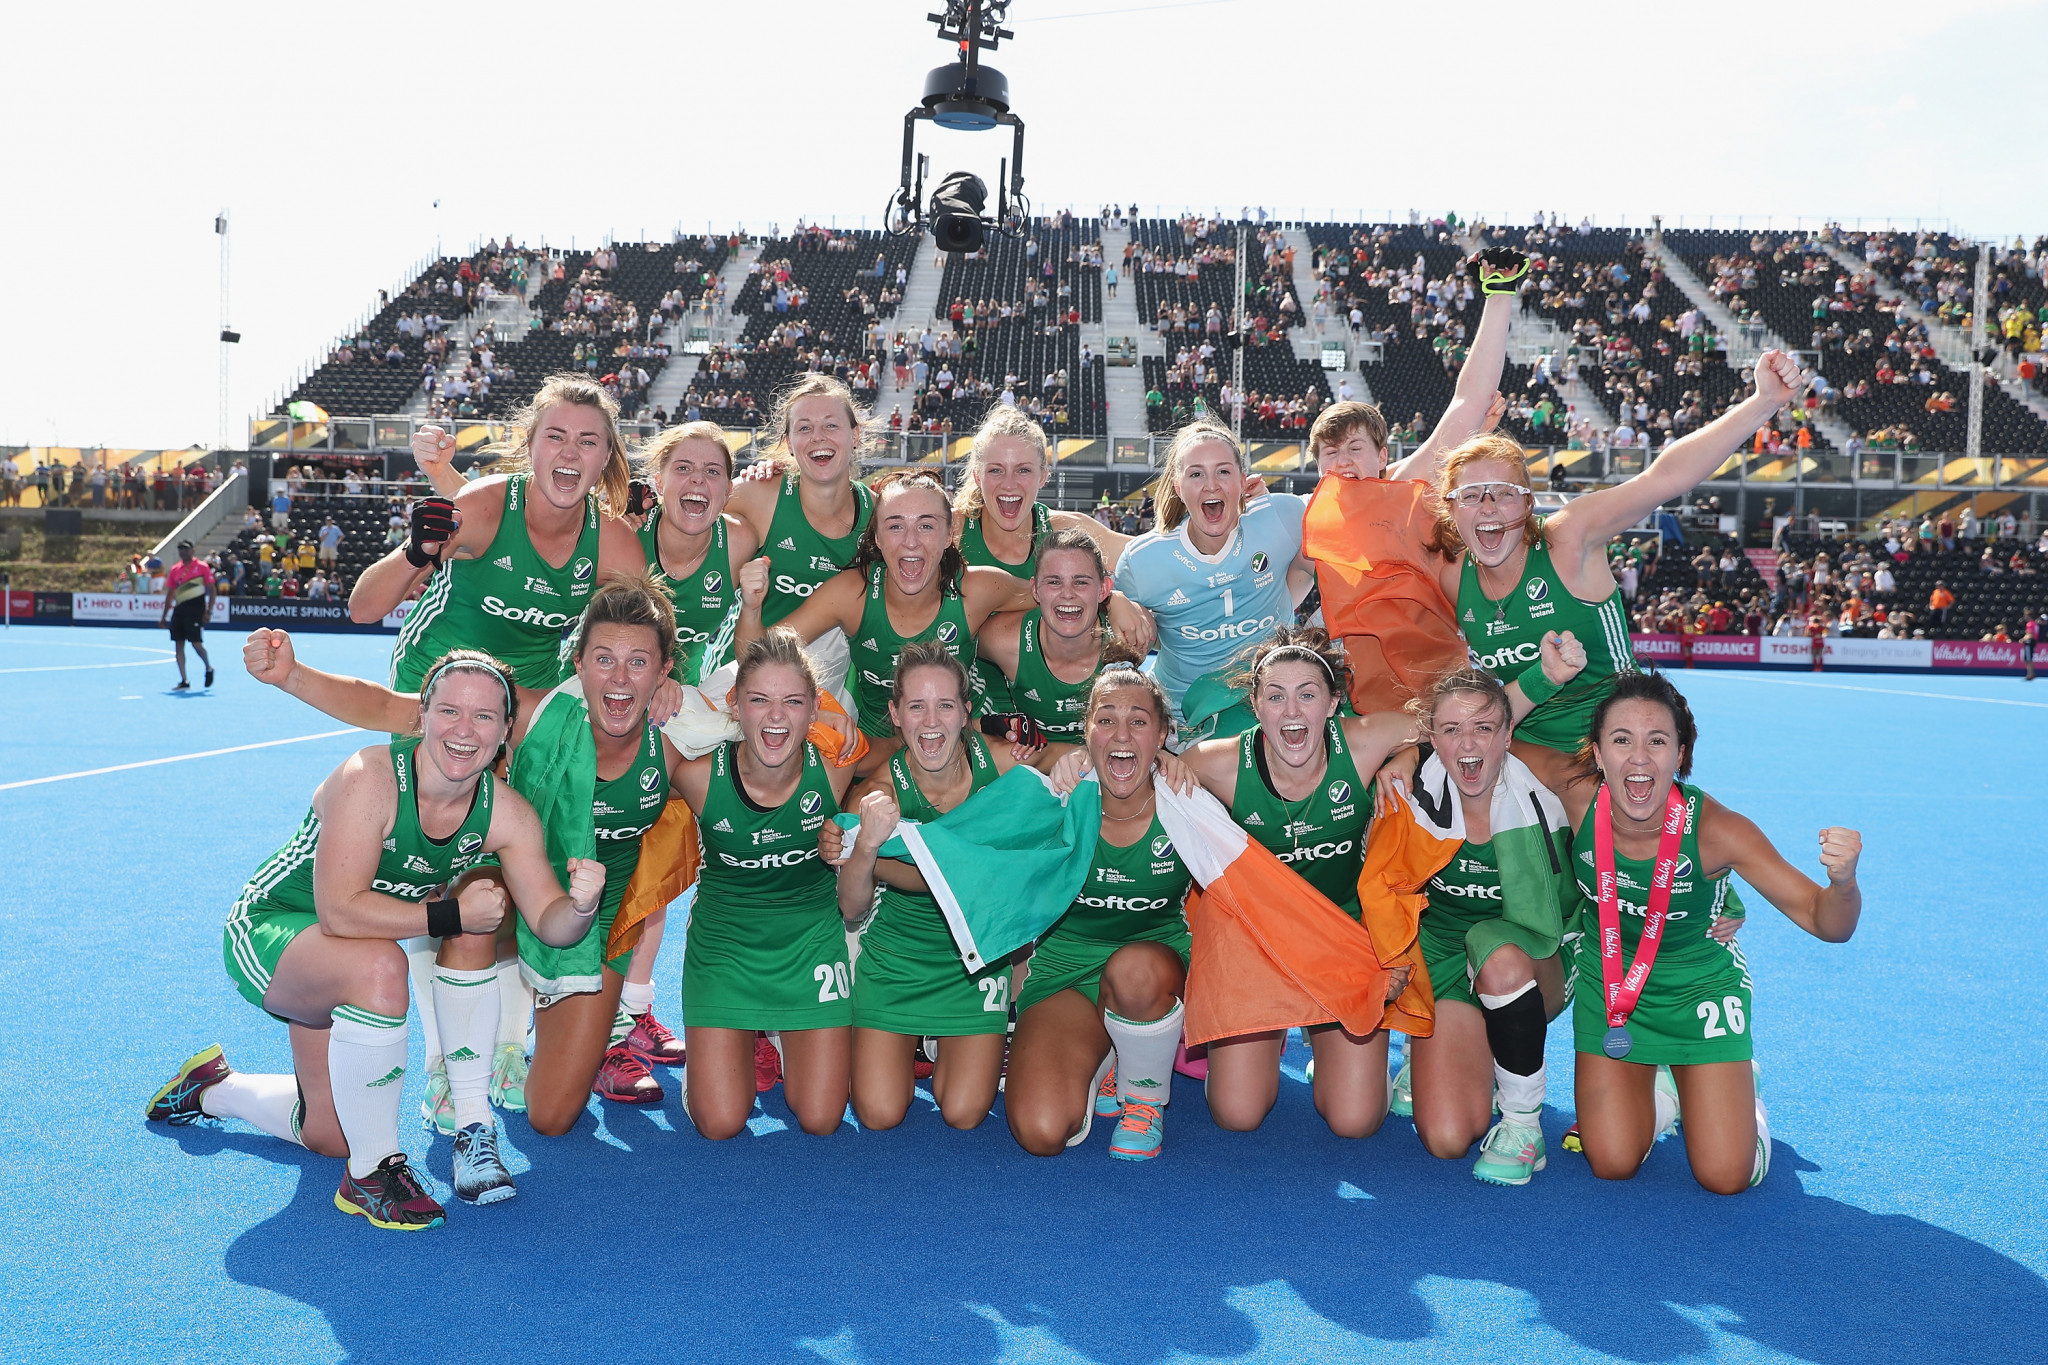 Historic win for Ireland as reach final of FIH Women's Hockey World Cup